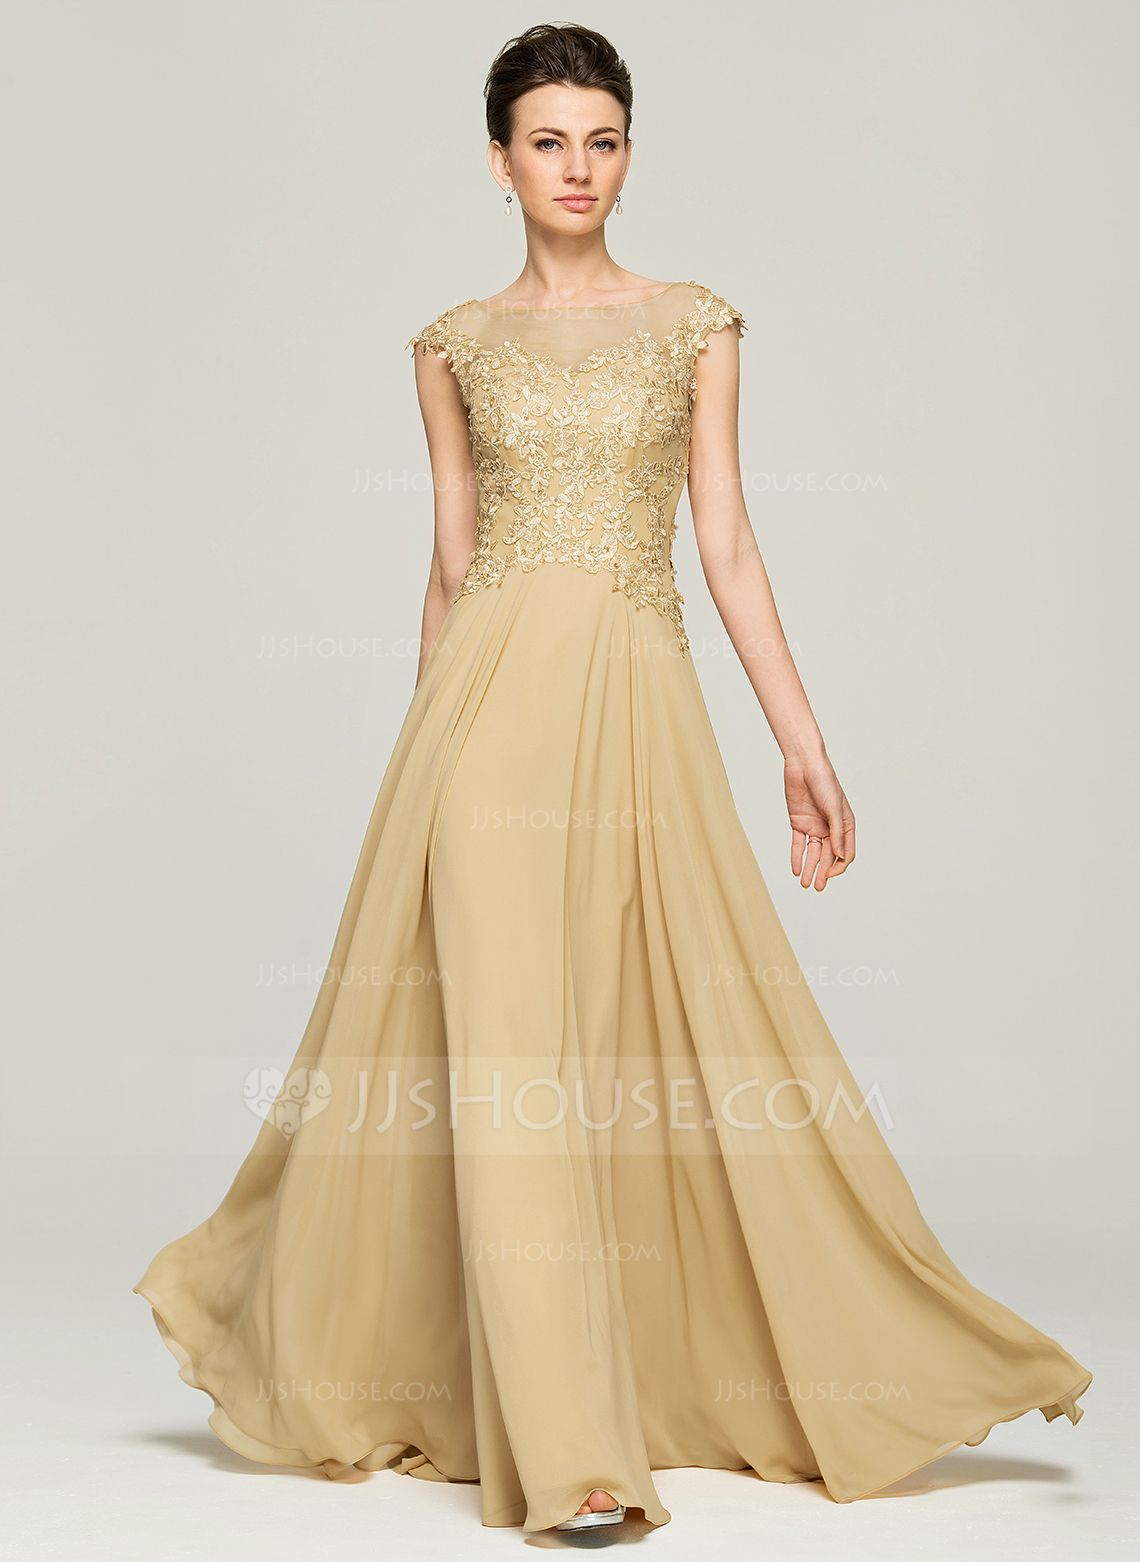 6c28e5aa141 A-Line Princess Scoop Neck Floor-Length Chiffon Lace Mother of the Bride  Dress With Beading Sequins